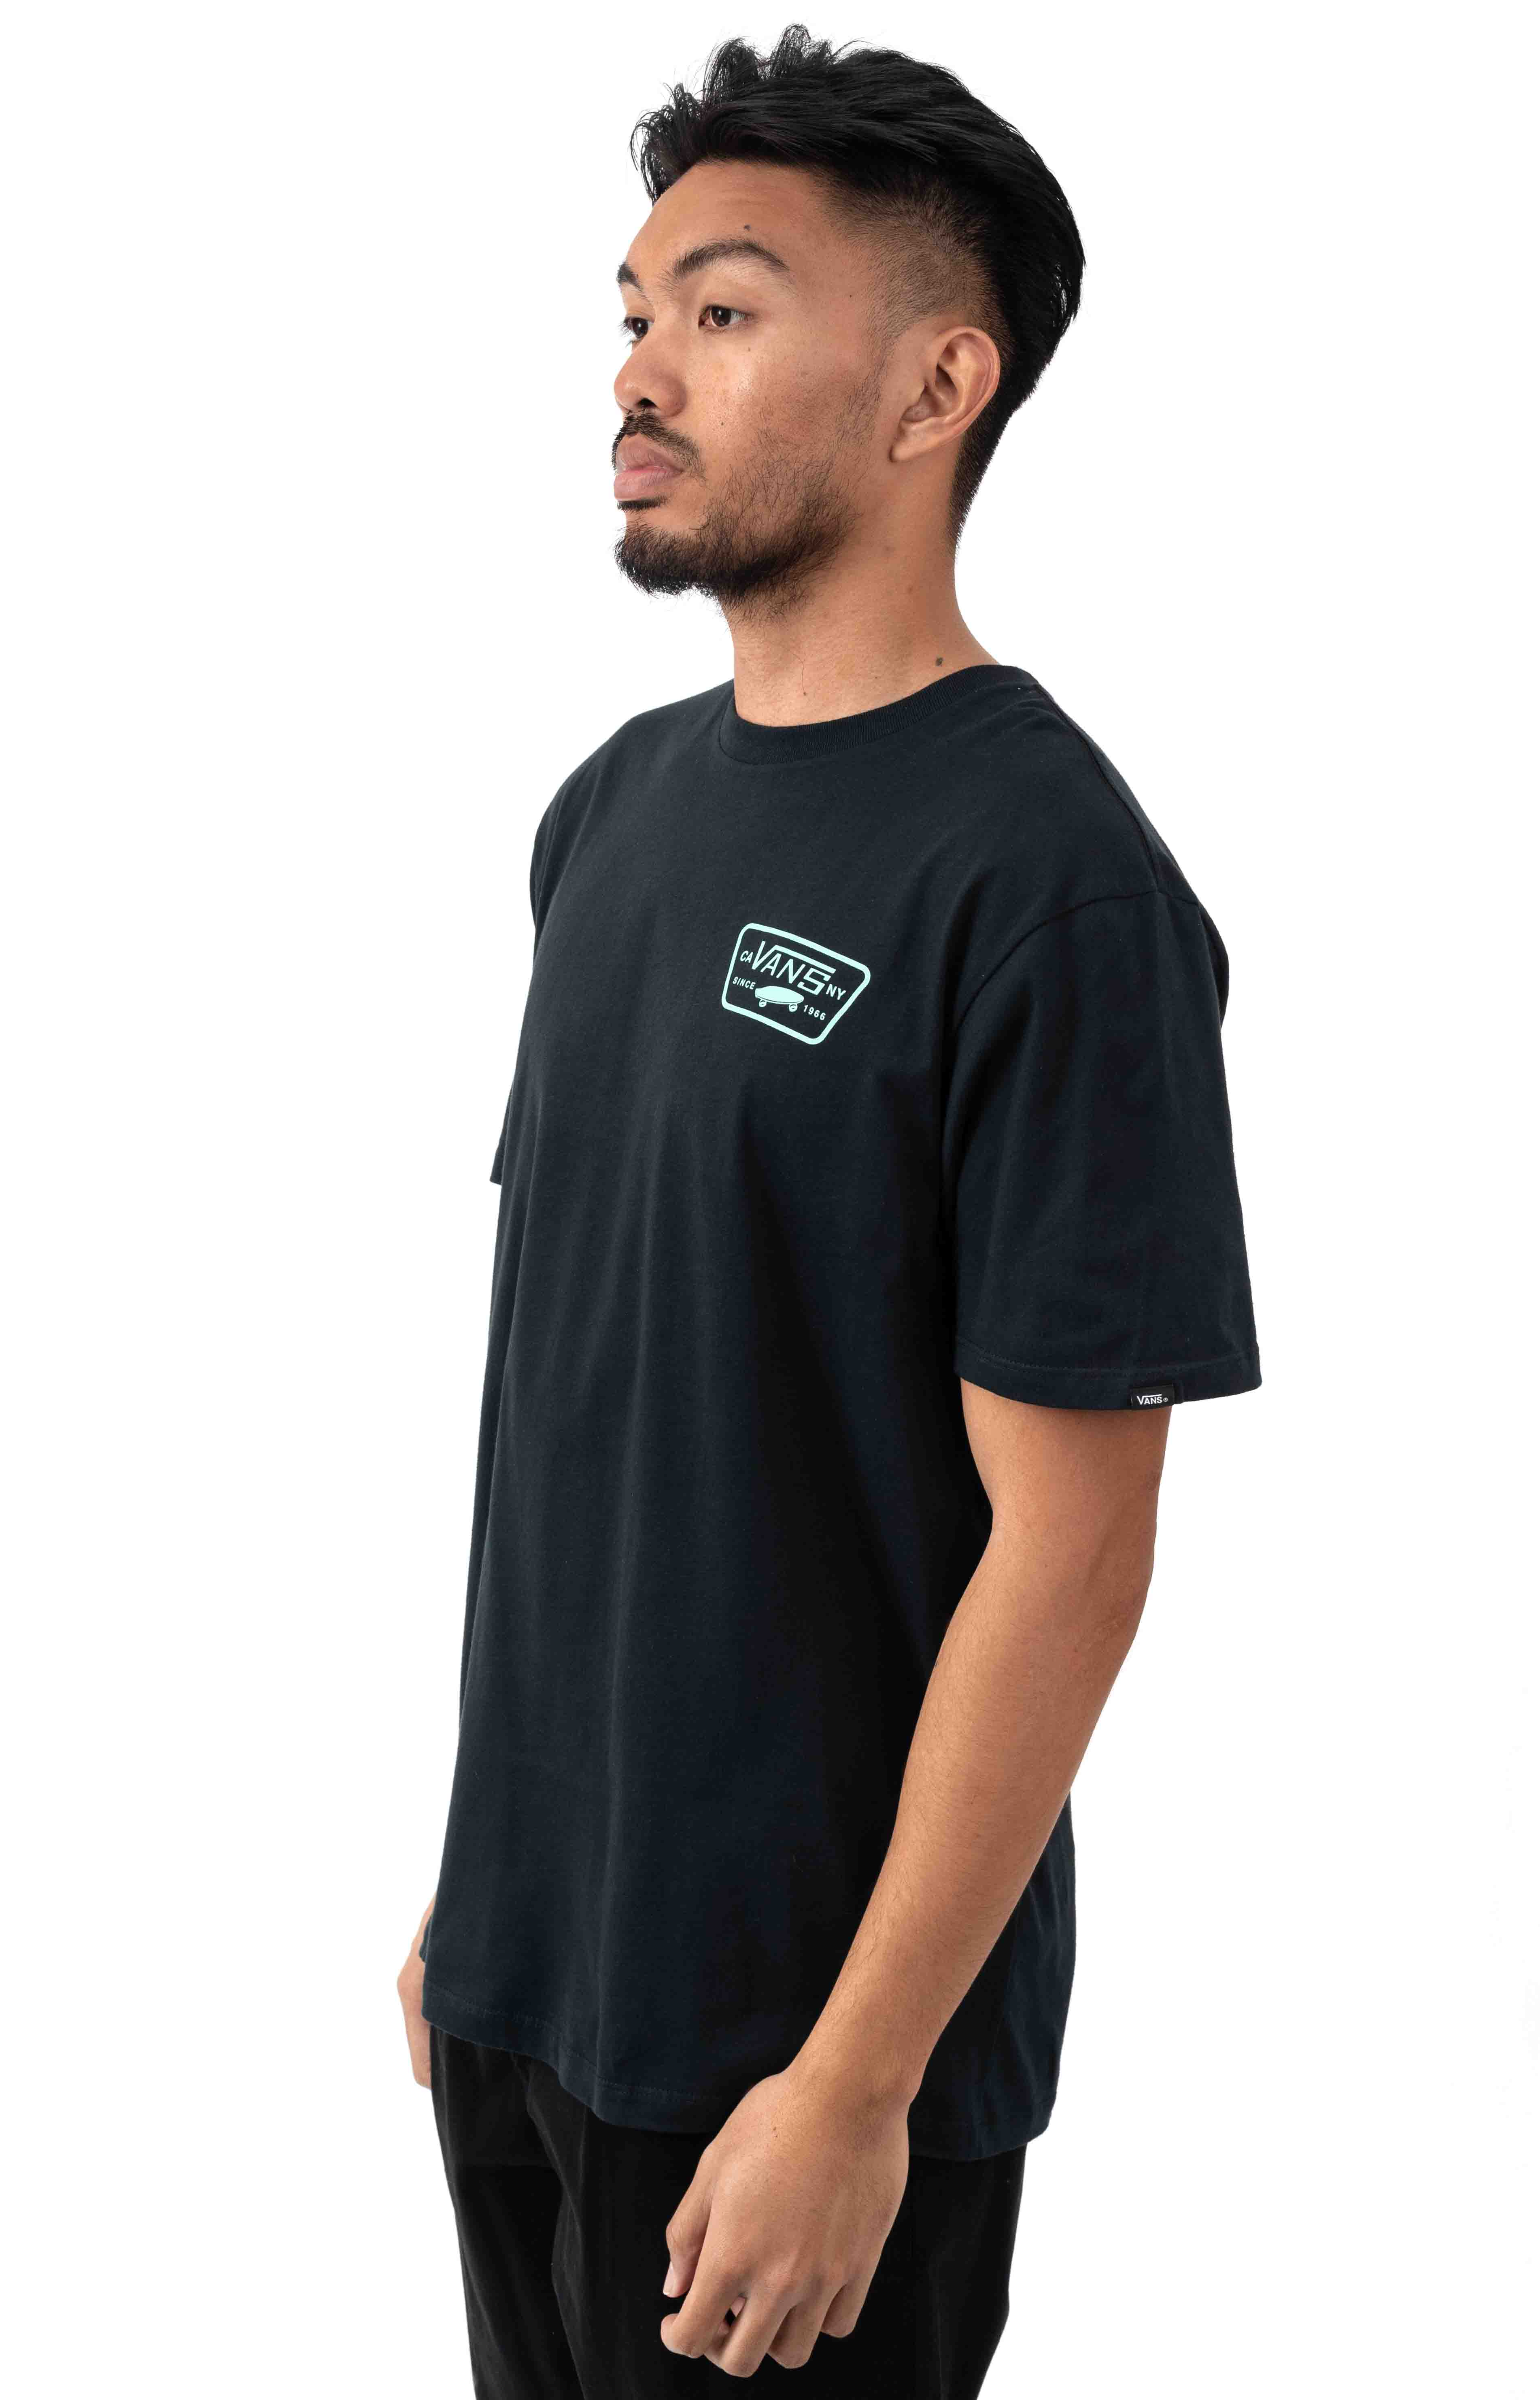 Full Patch Back T-Shirt - Black/Dusty Jade  3